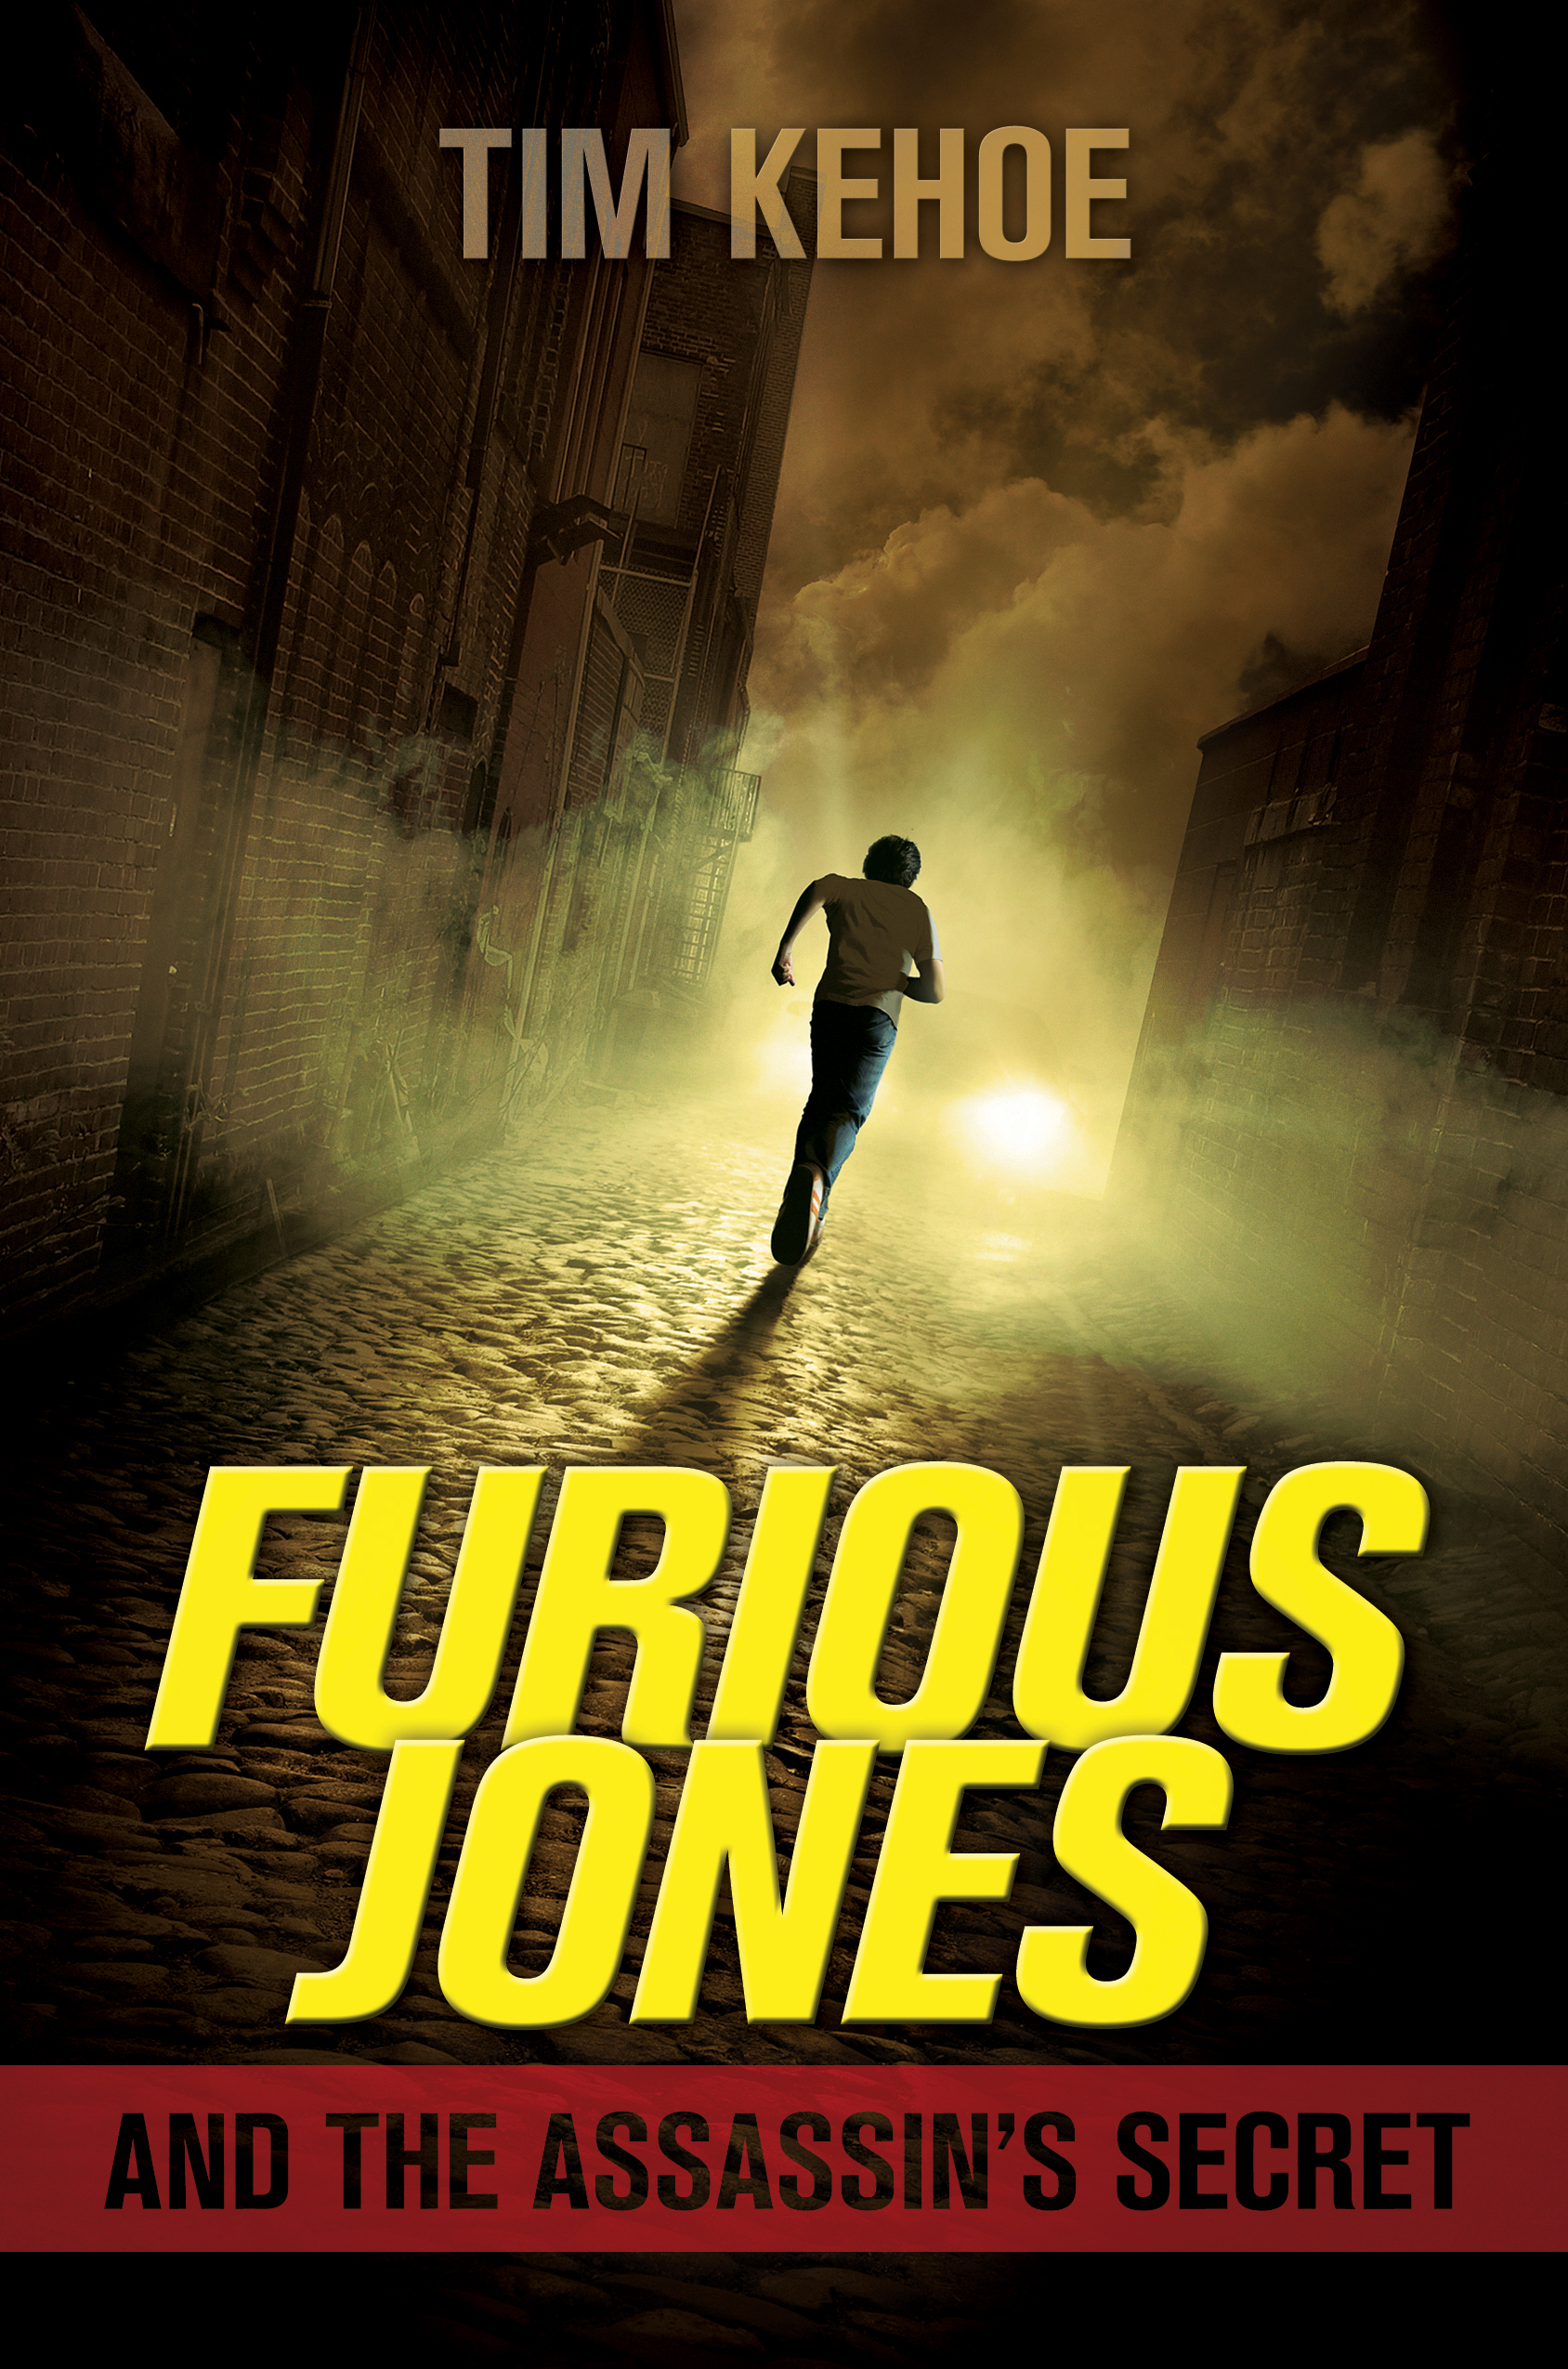 Furious-jones-and-the-assassins-secret-9781442473379_hr